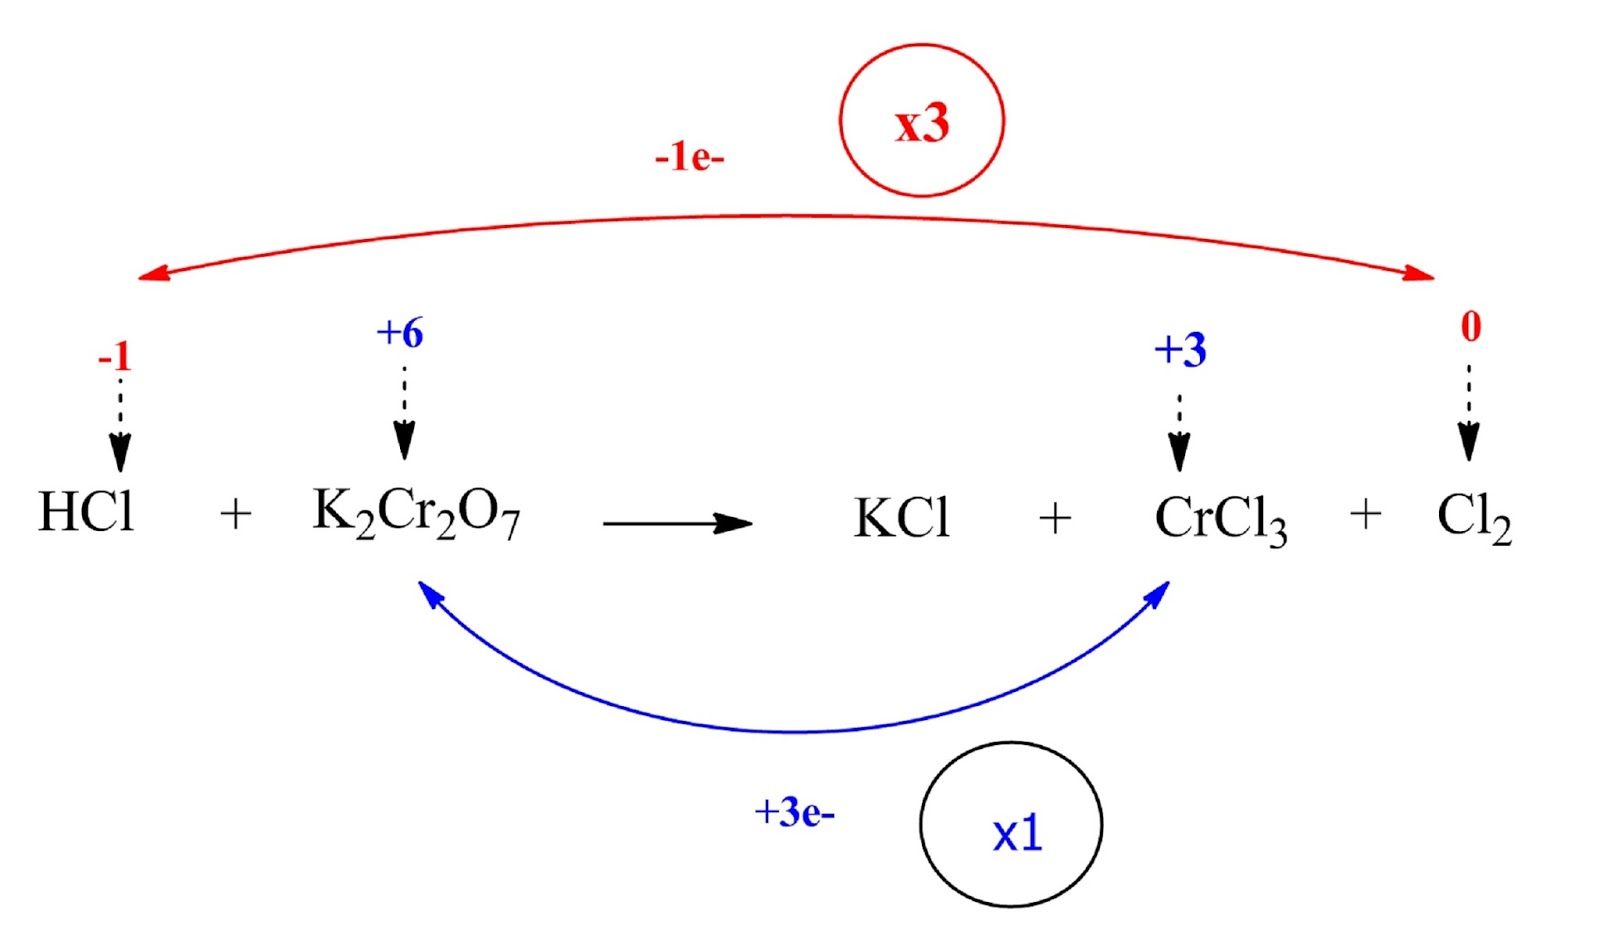 unbalanced reaction between HCl and K2Cr2O7 including oxidation number difference